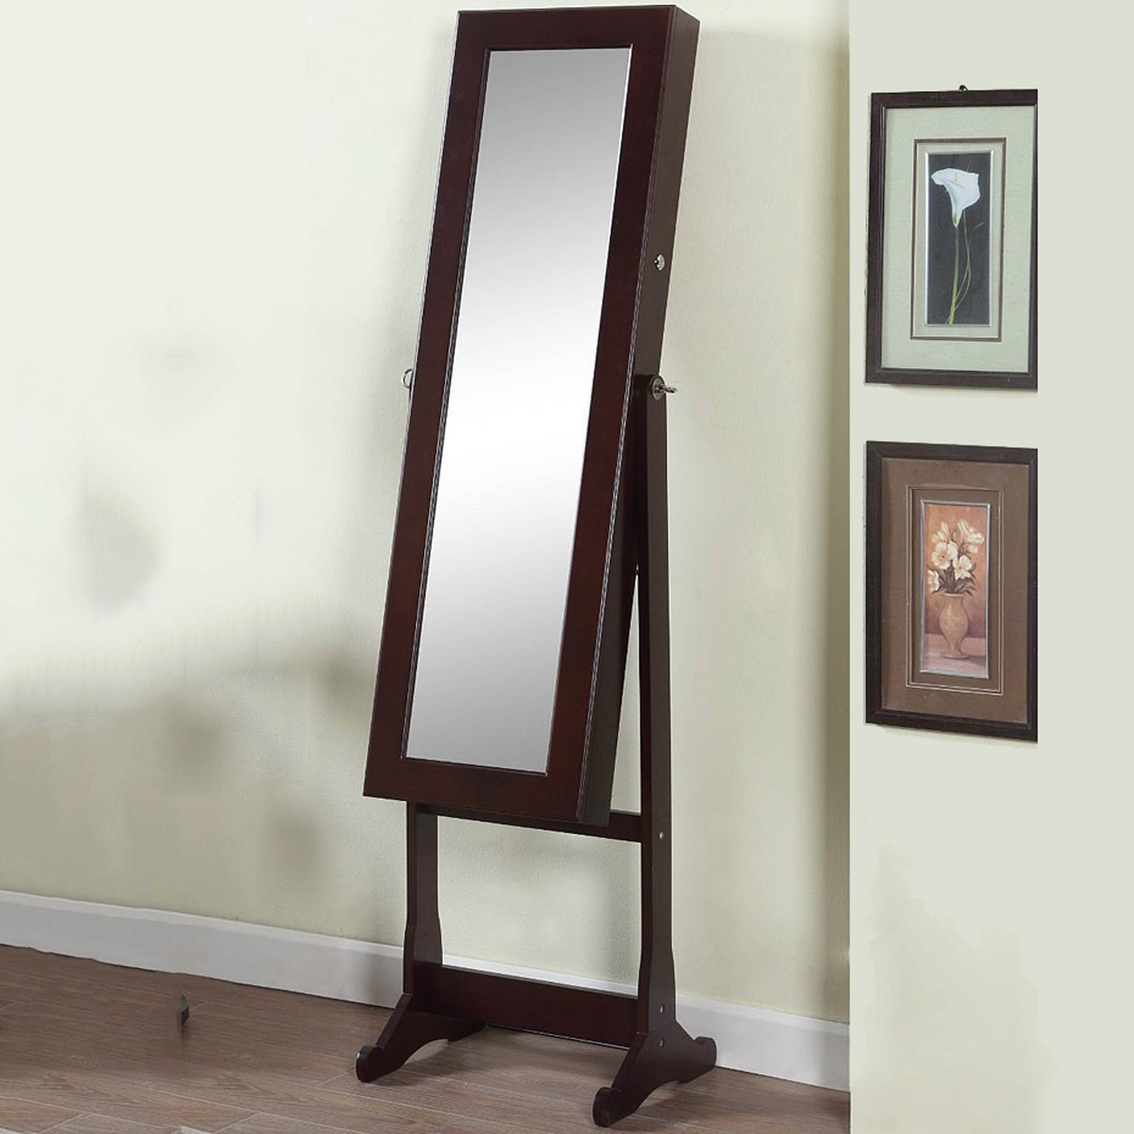 Artiva Deluxe Floor Standing Mirror And Jewelry Cabinet With Led